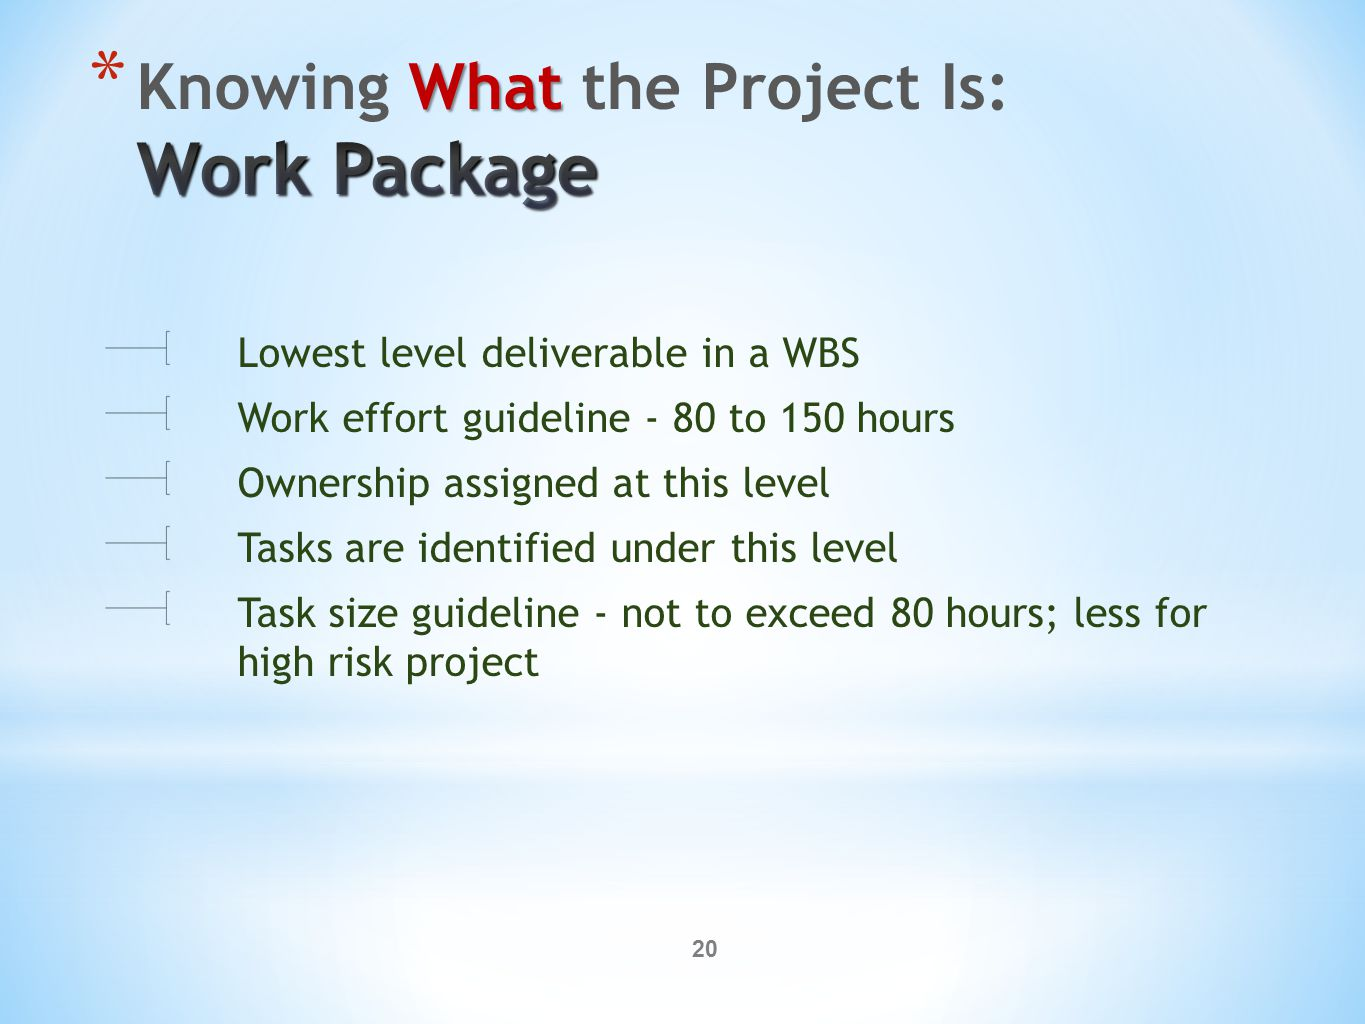 20 Lowest level deliverable in a WBS Work effort guideline - 80 to 150 hours Ownership assigned at this level Tasks are identified under this level Task size guideline - not to exceed 80 hours; less for high risk project